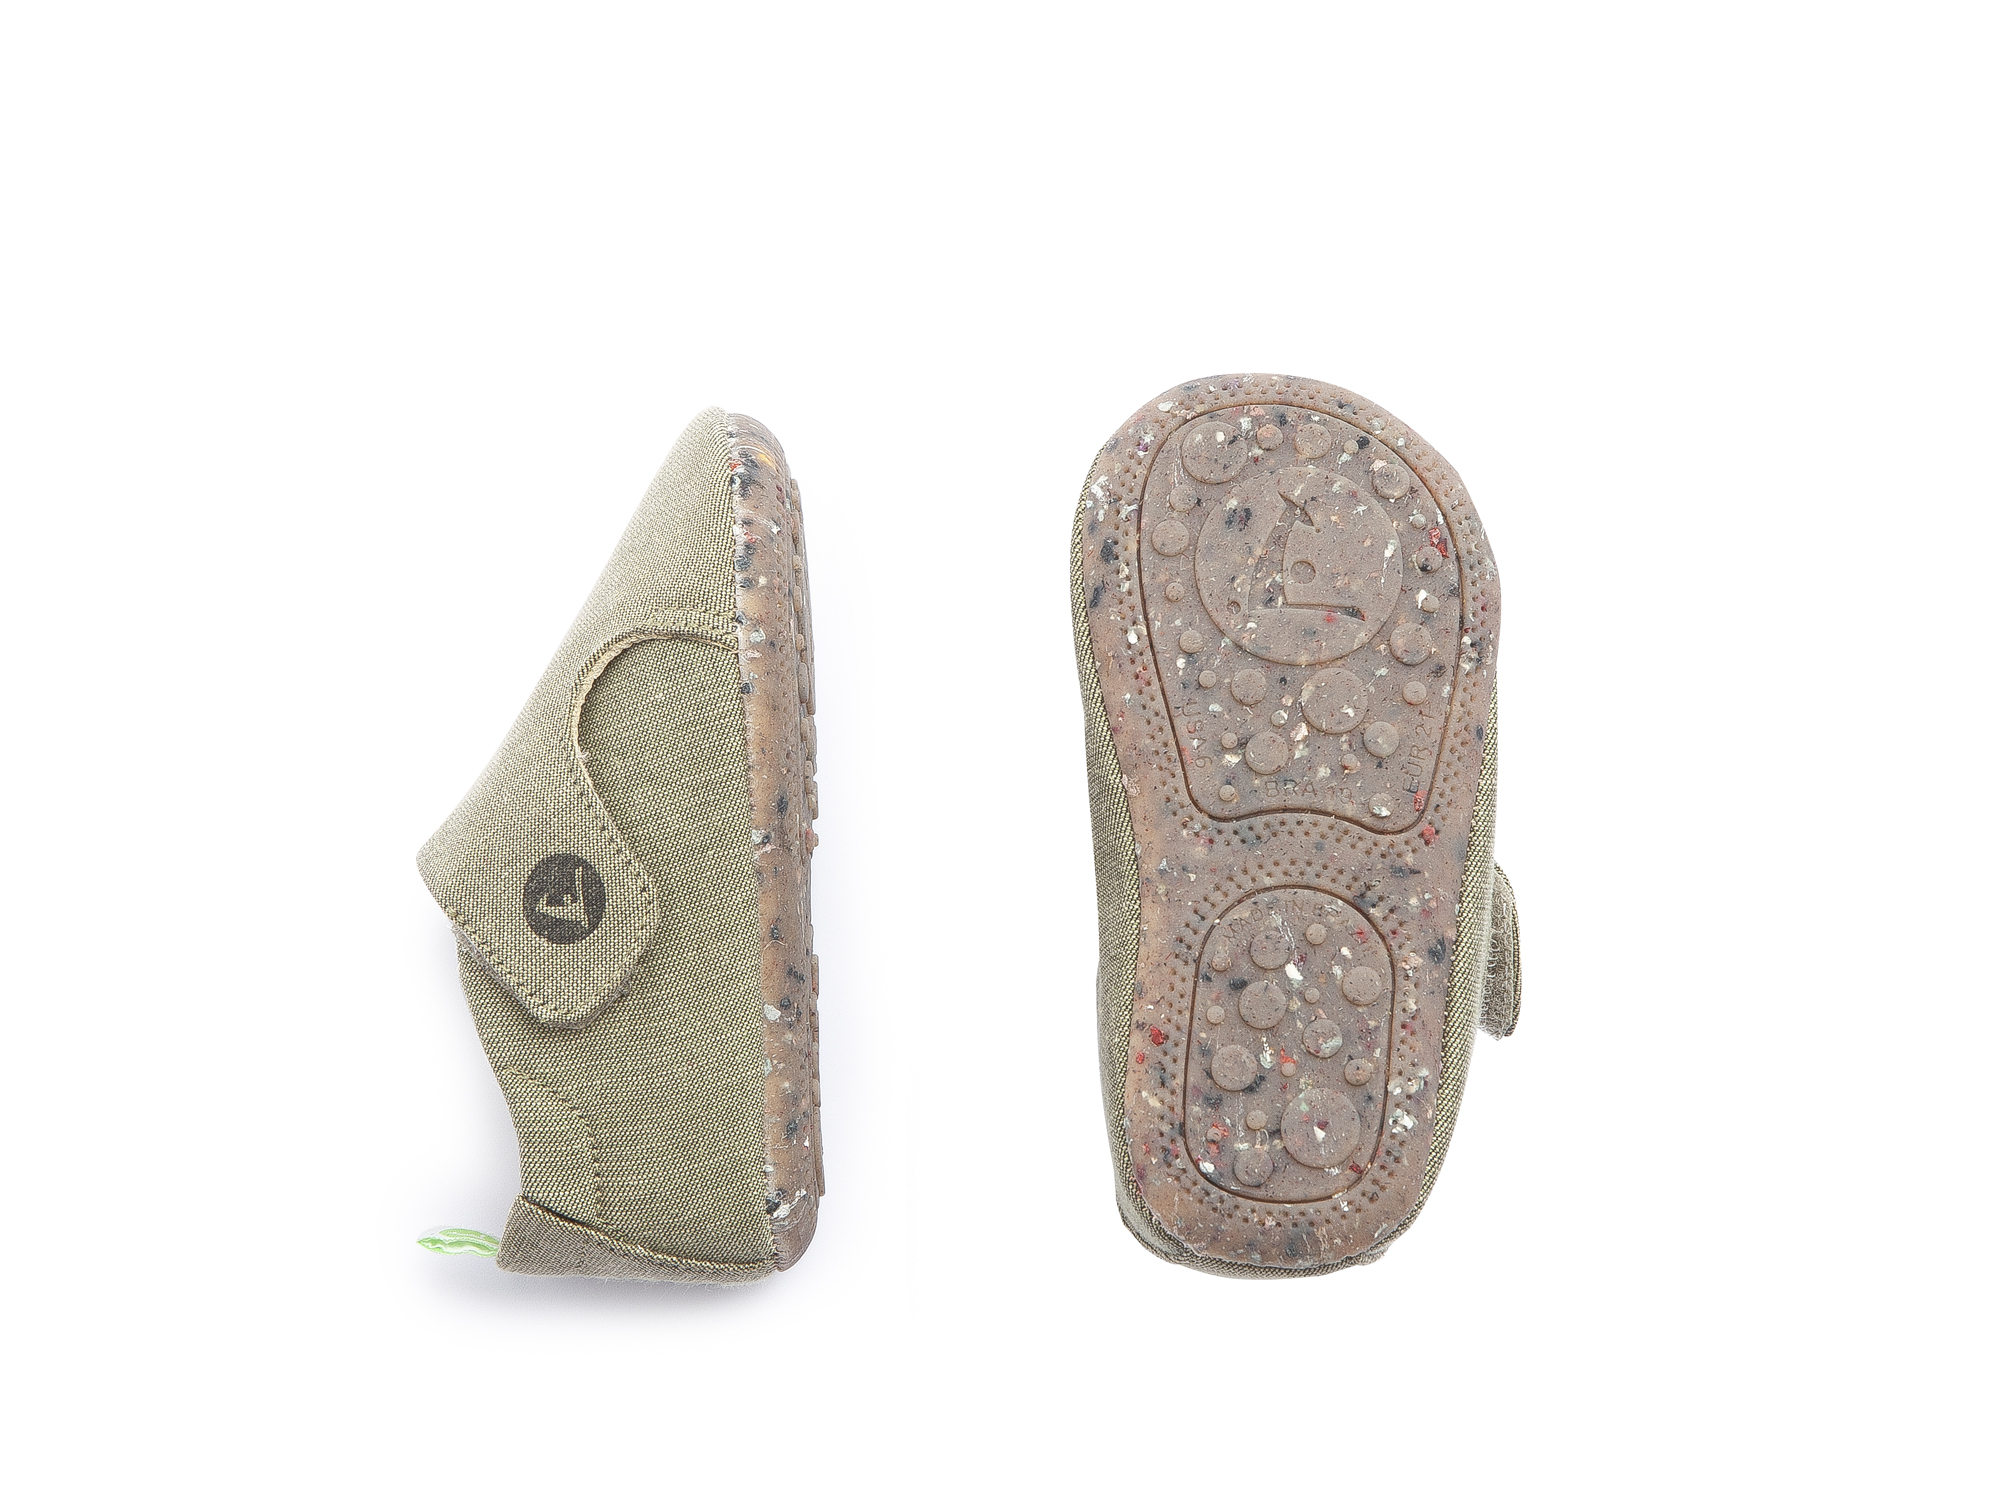 Sneaker Casual Greeny Light Olive Canvas Baby 0 à 2 anos - 1